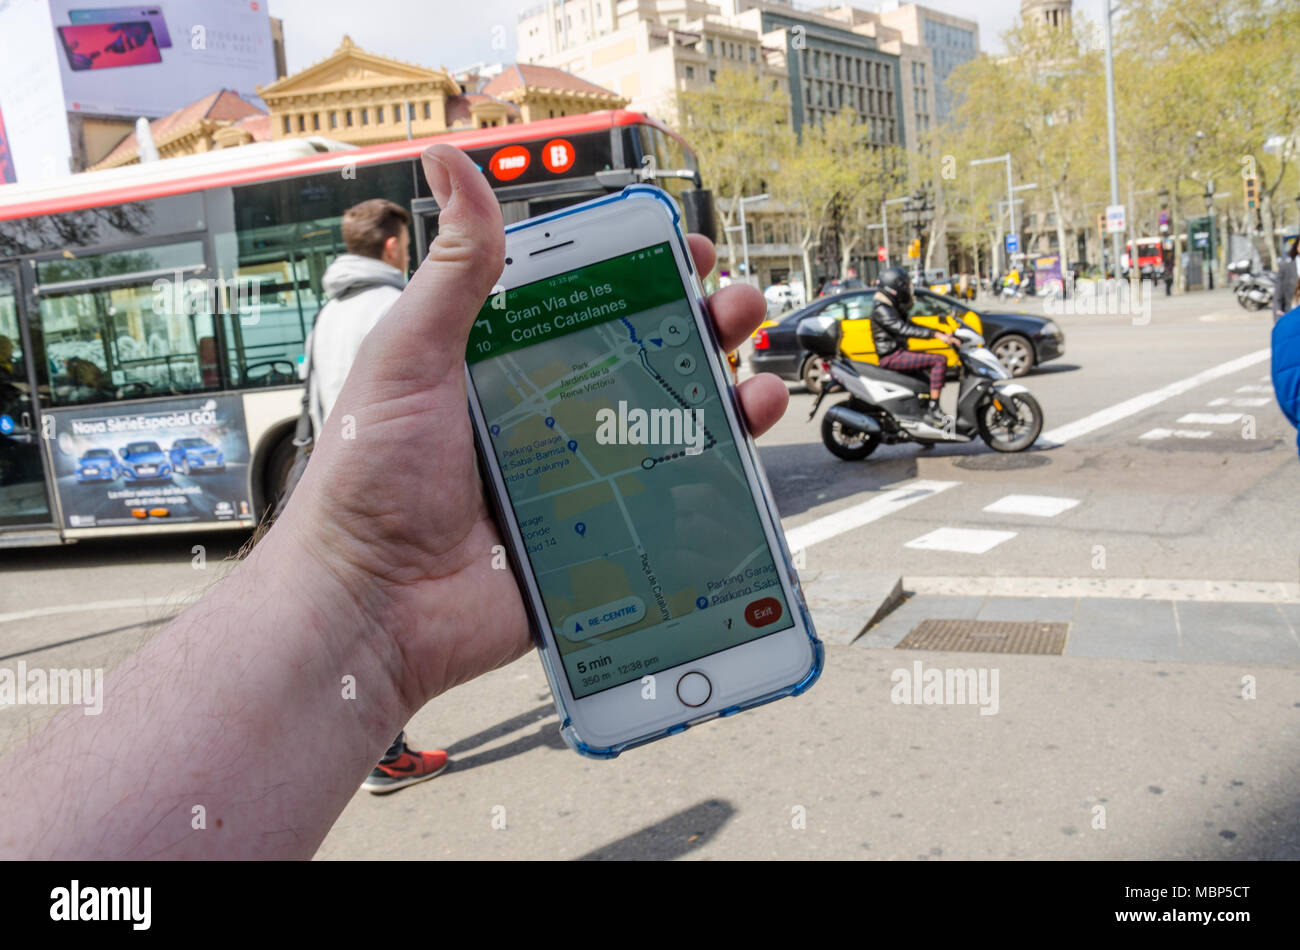 Navigating Barcelona using Google Maps on an iPhone to navigate around the city. - Stock Image